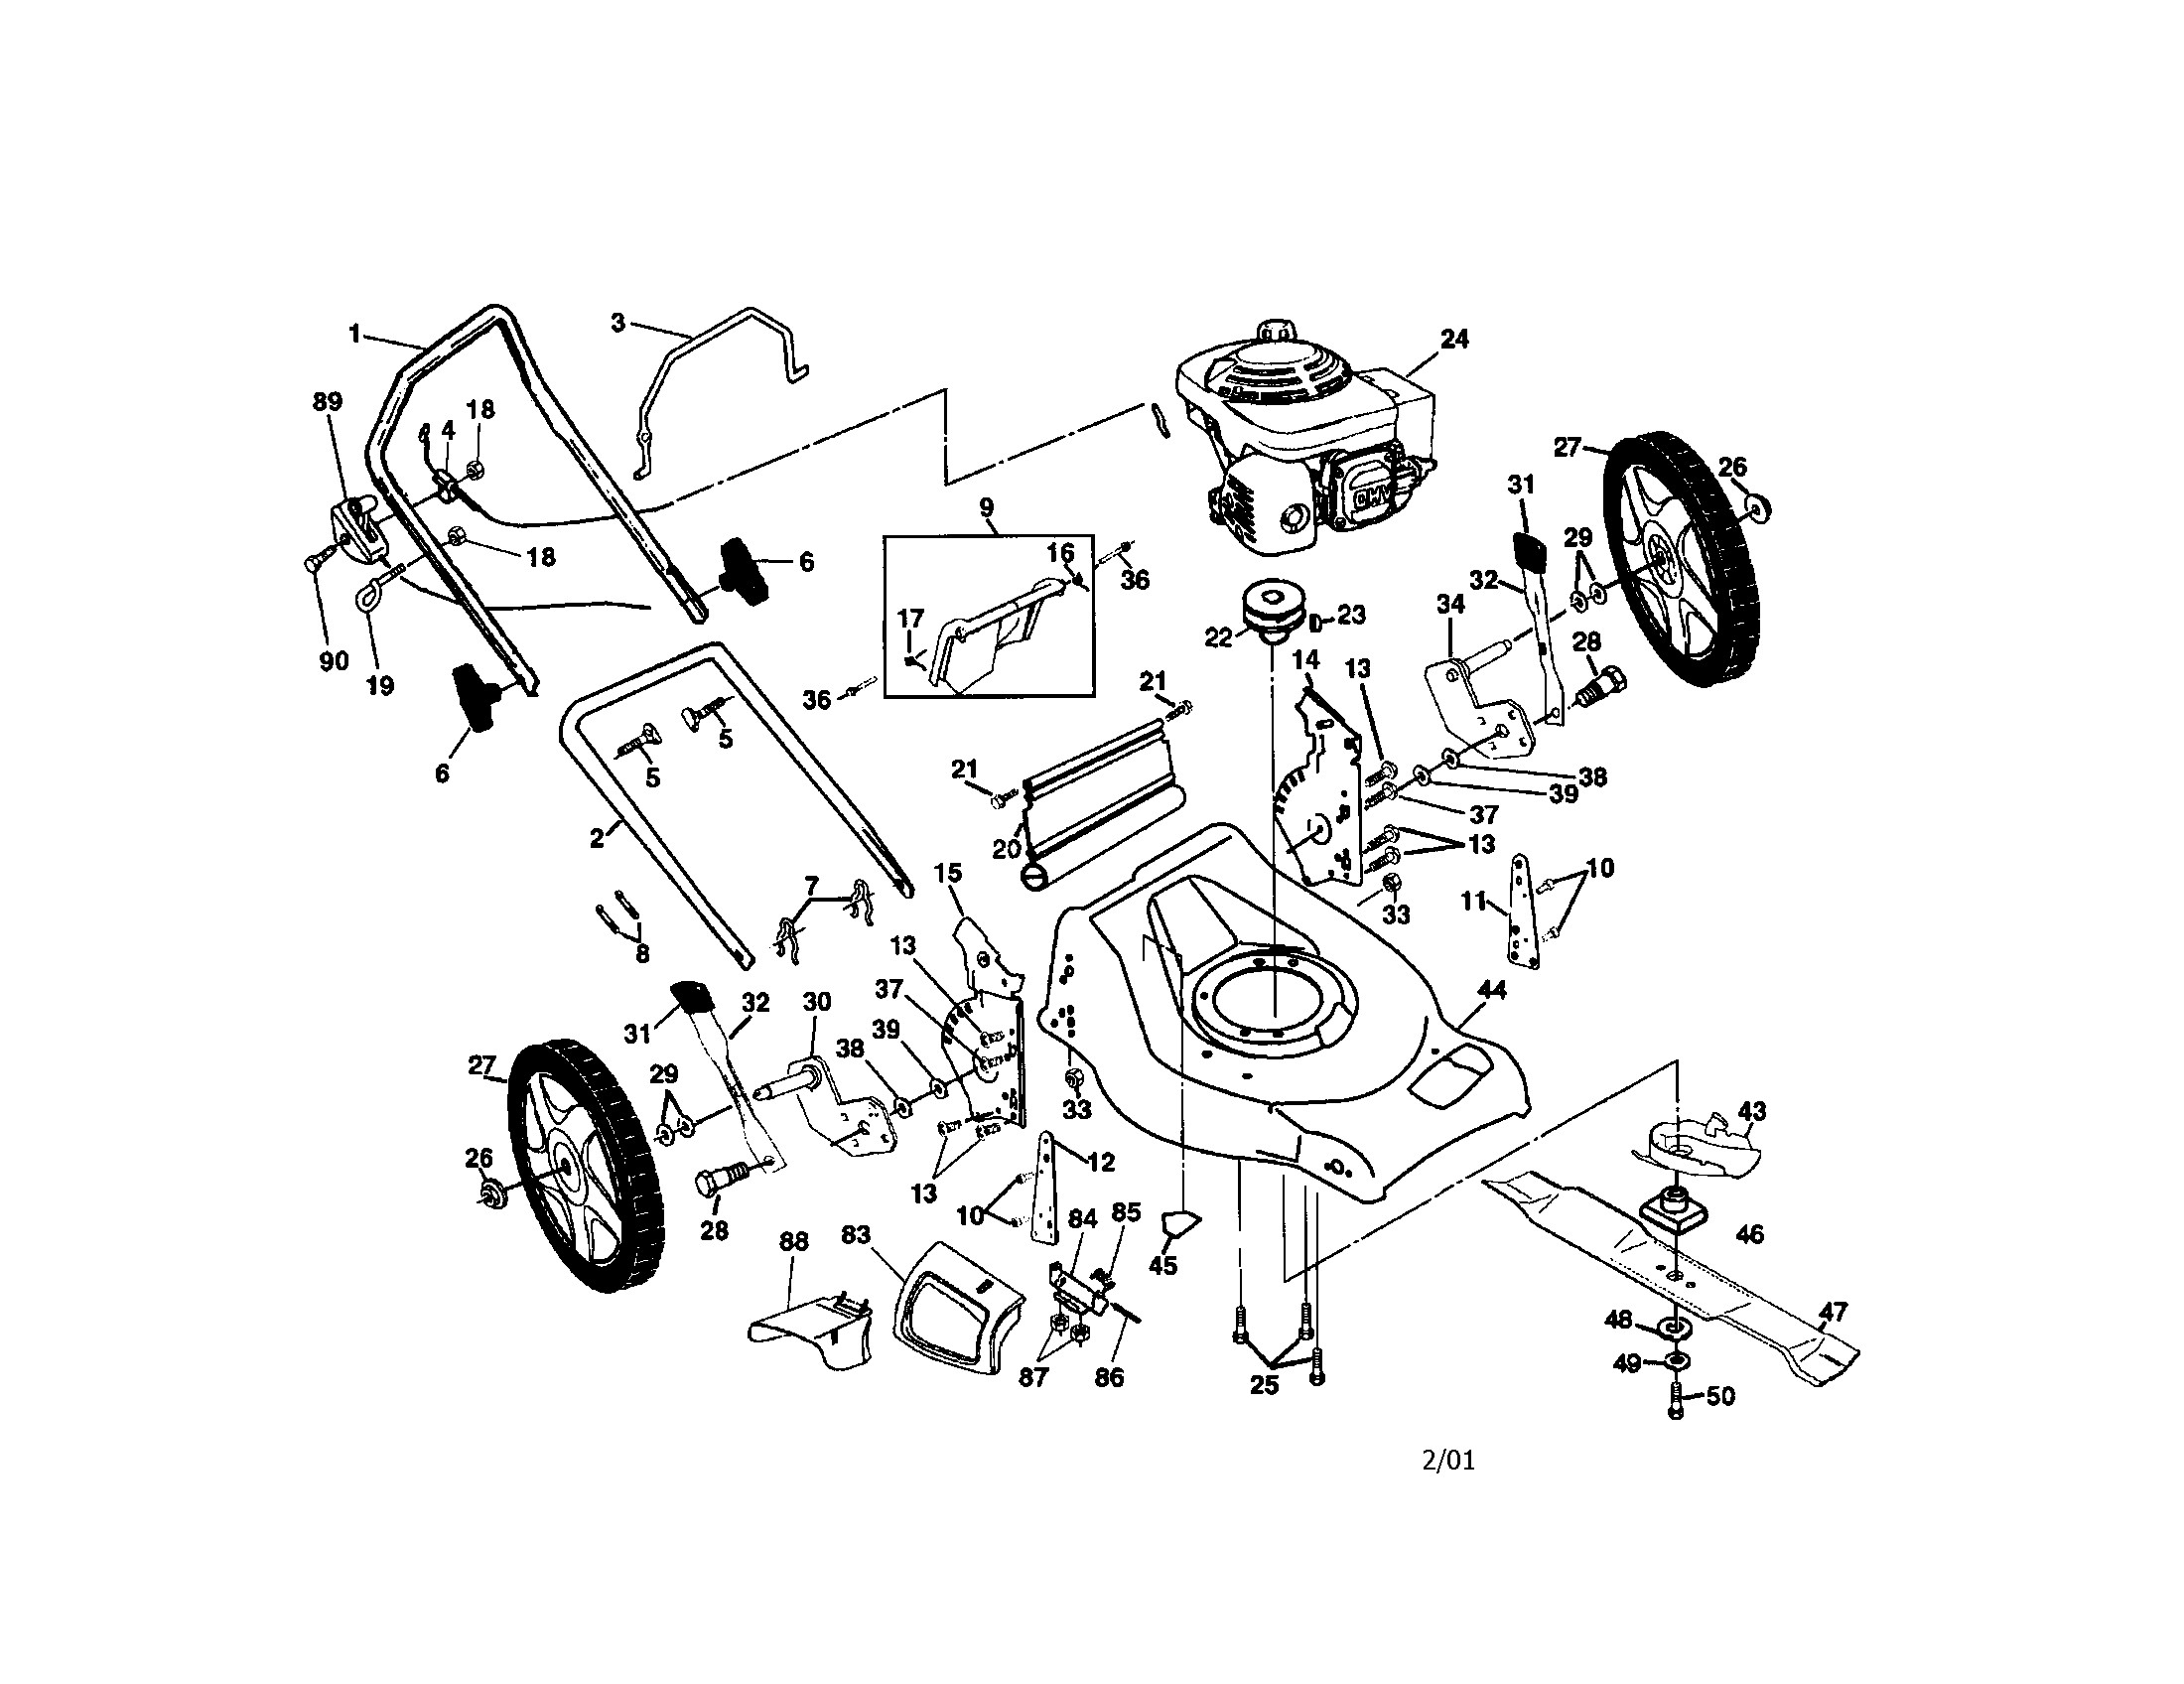 Dixon Lawn Mower Parts Diagram Craftsman Lt1000 Riding